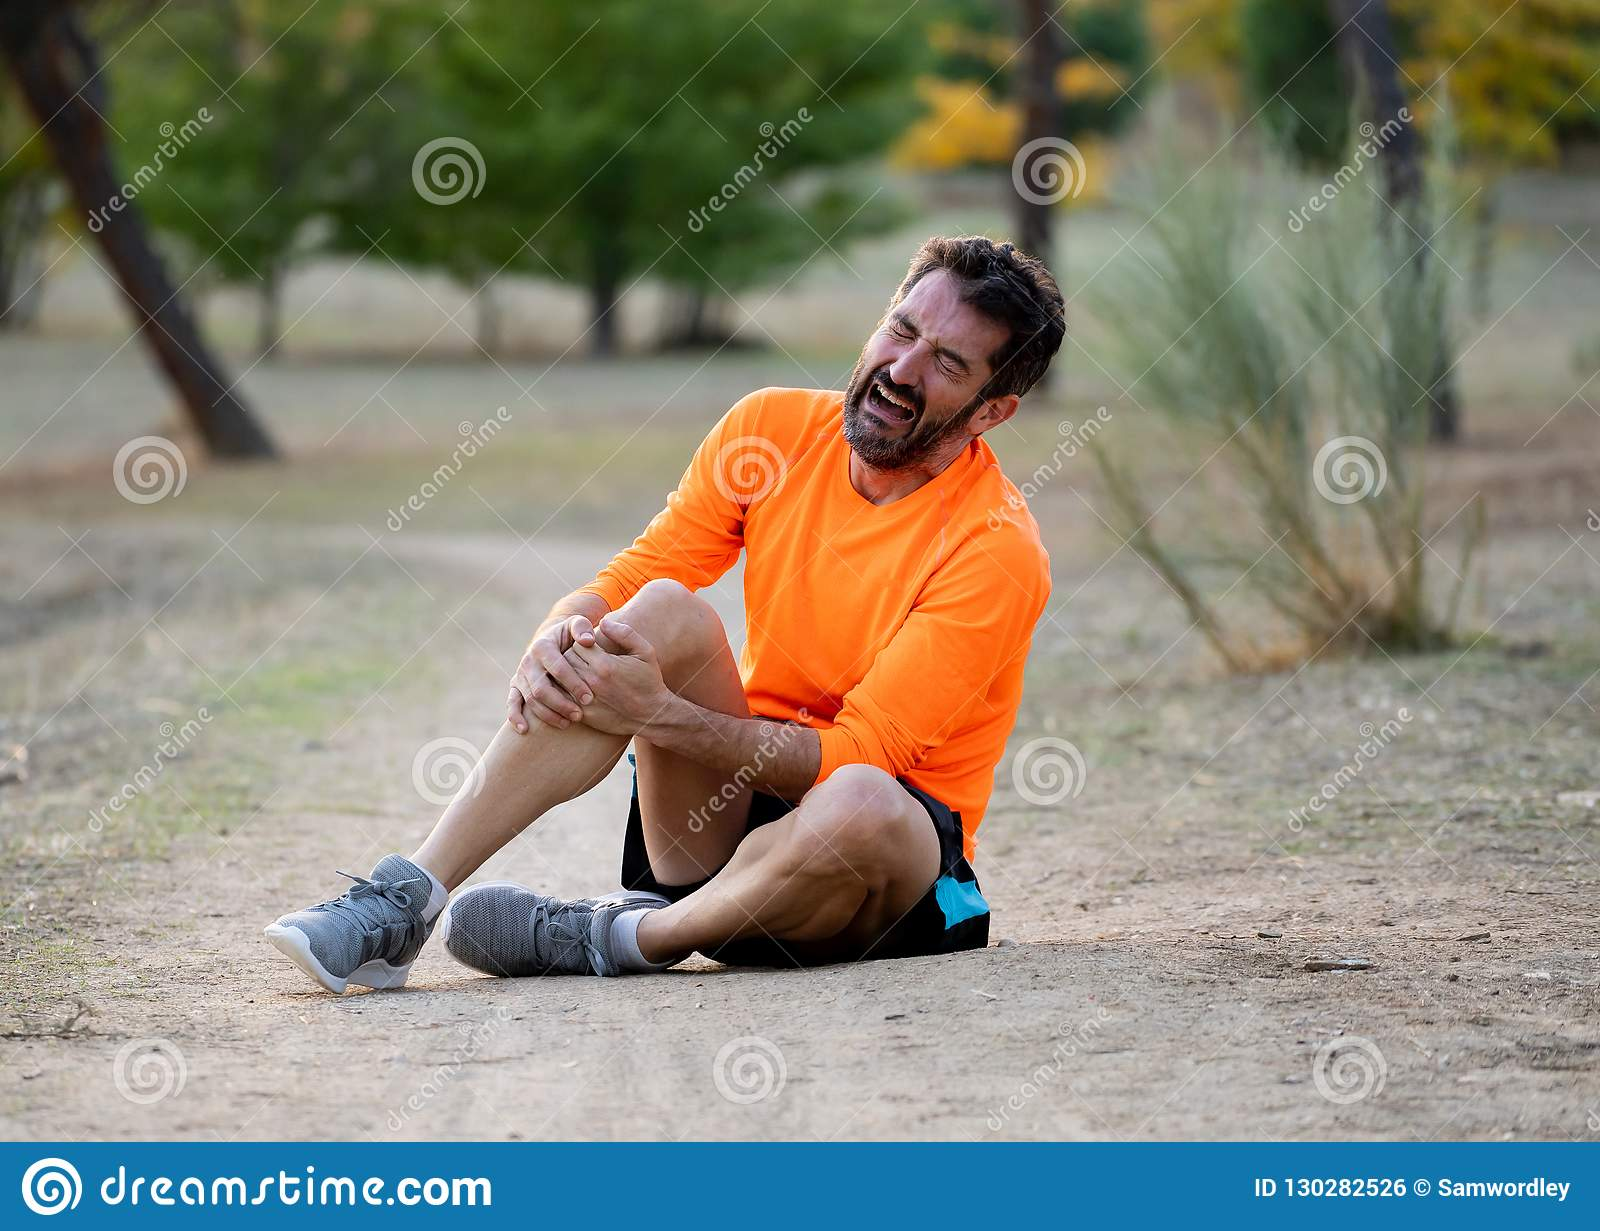 5c351b5269e Young fit man holding knee with his hands in pain after suffering muscle  injury broken bone leg pain sprain or cramp during a running workout in  park ...